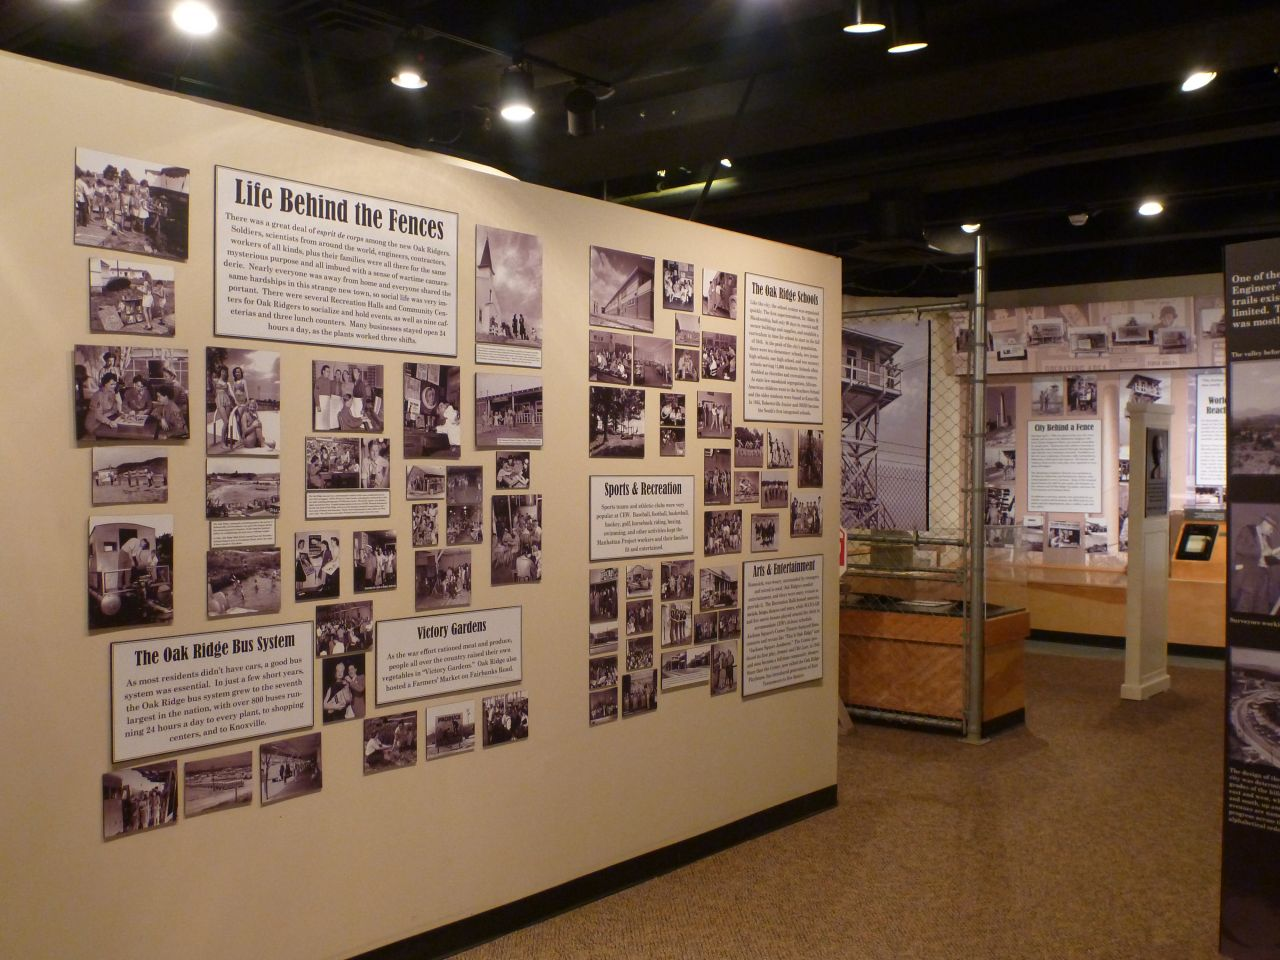 Inside The American Museum Of Science And History In Oak Ridge, TN